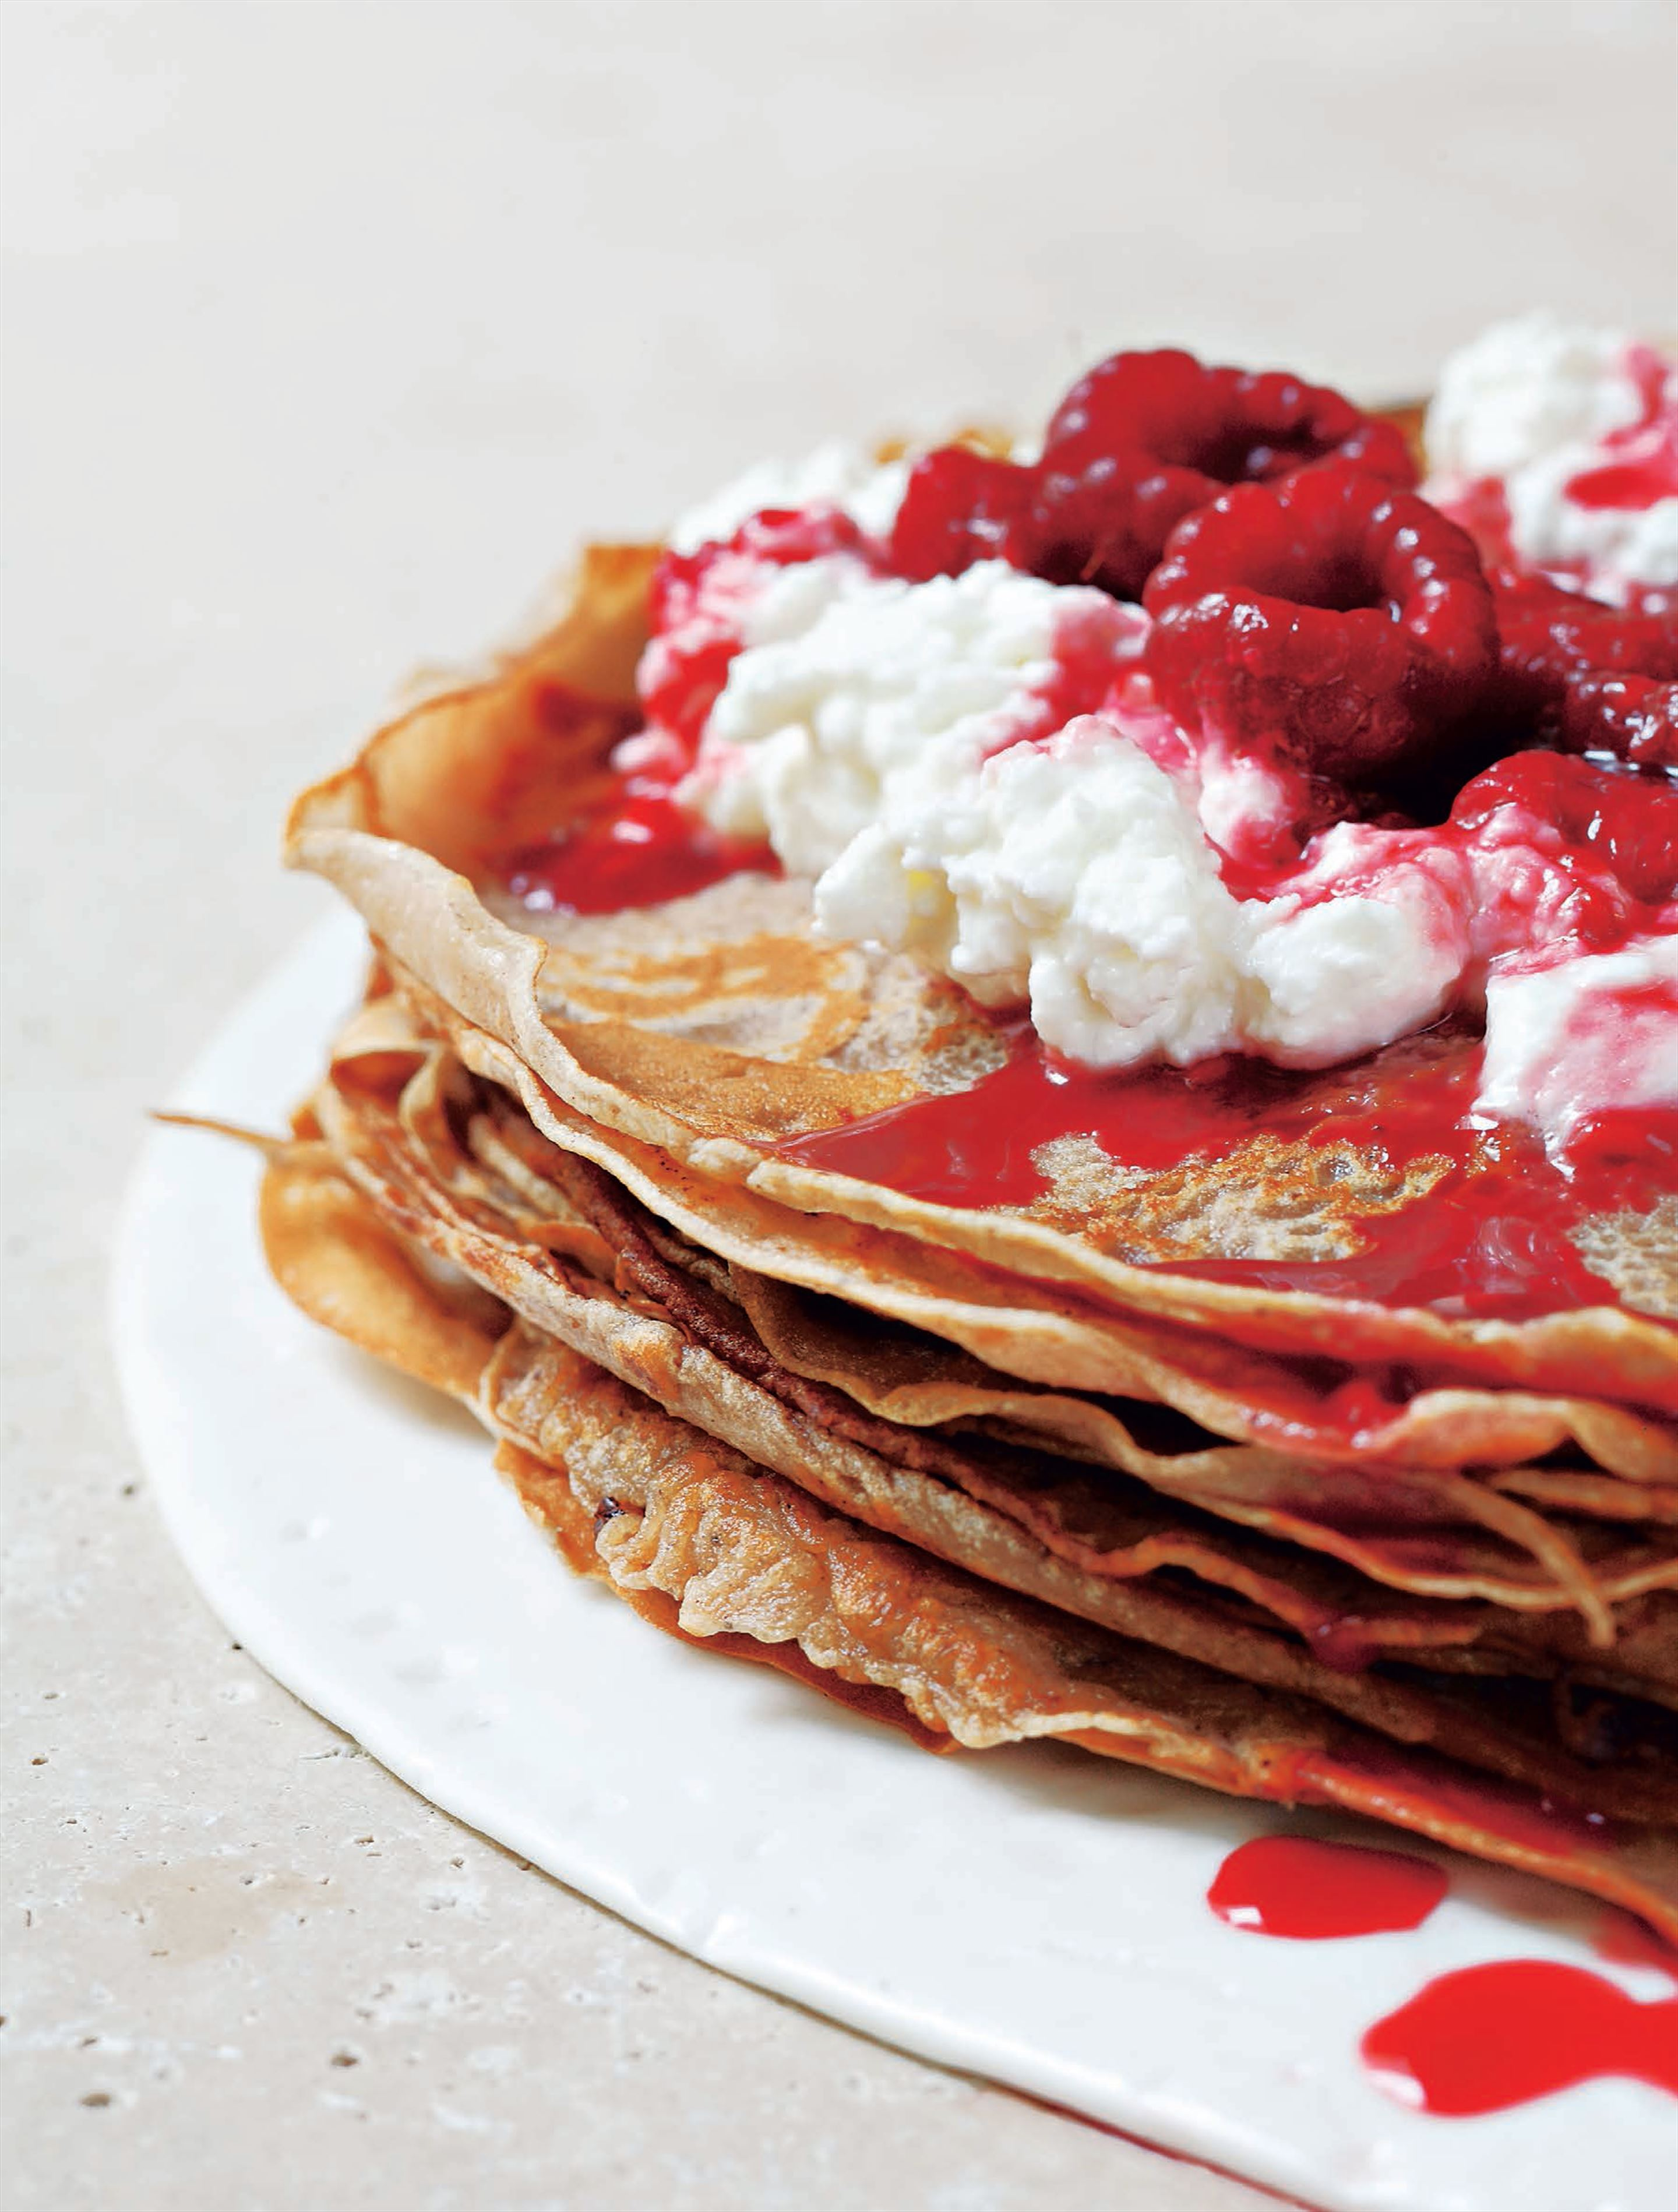 Chestnut crêpes with pan-fried raspberries and brocciu